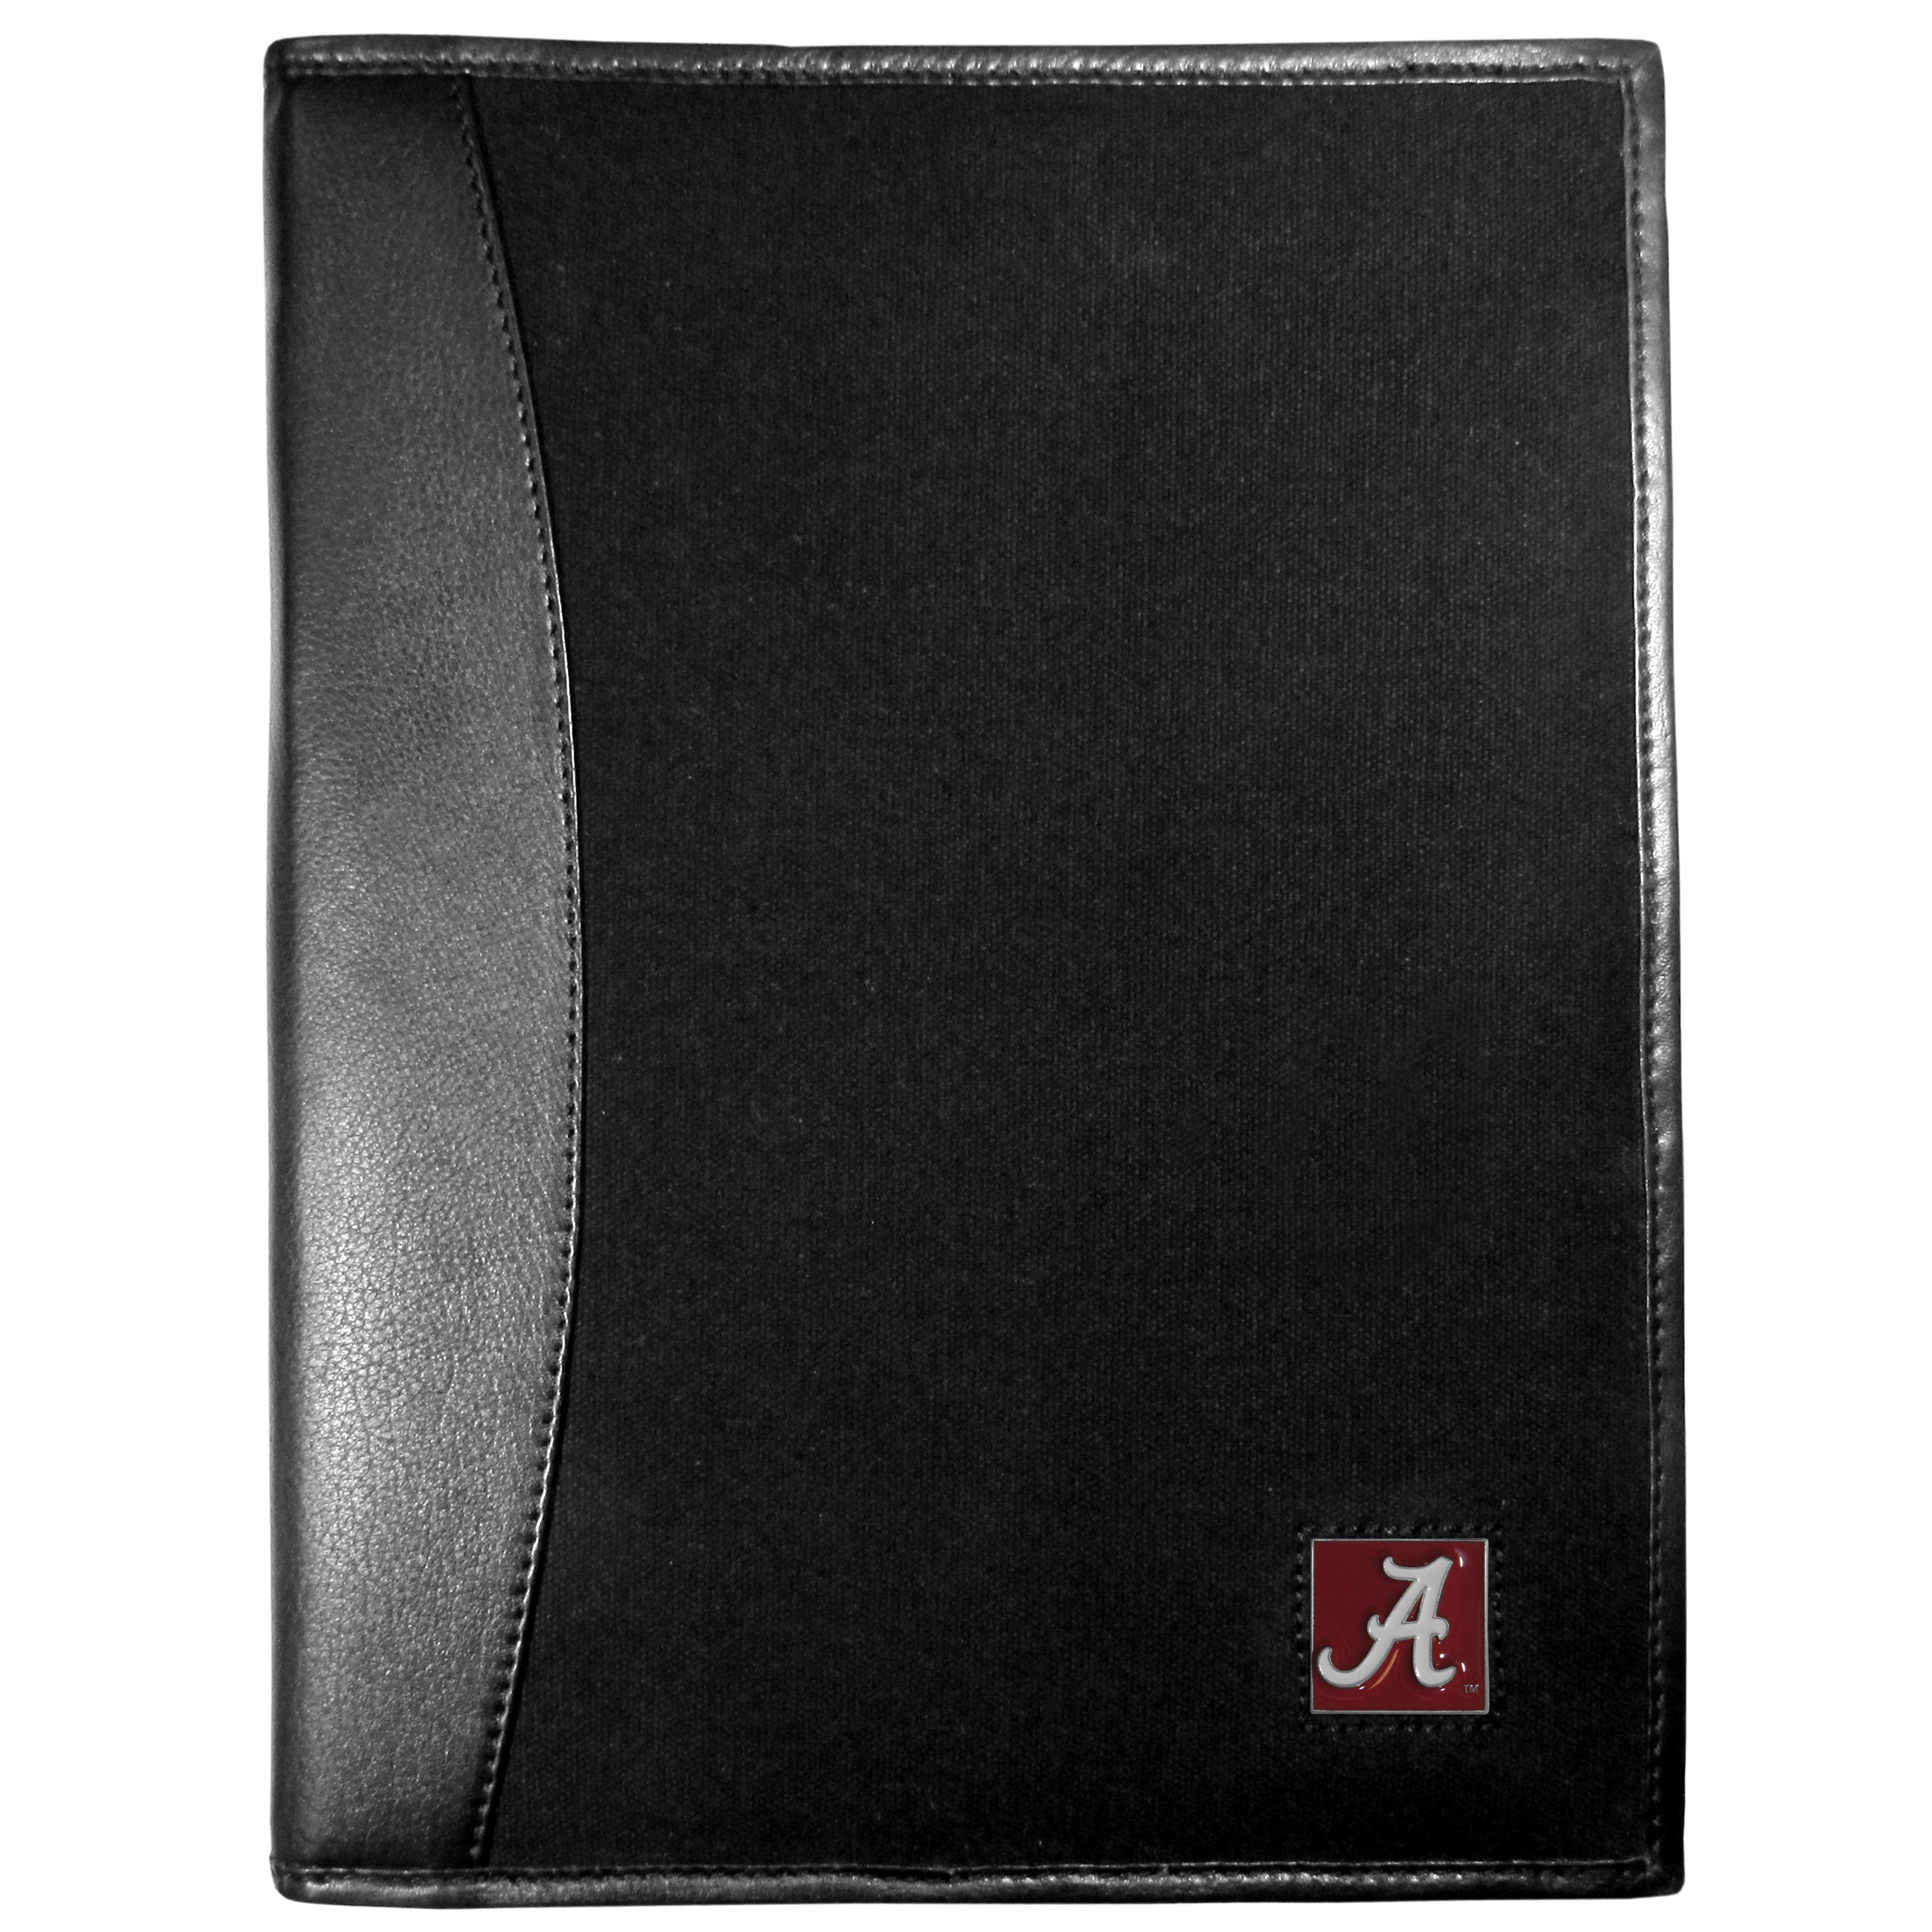 Alabama Crimson Tide Leather and Canvas Padfolio - Our leather and canvas padfolio perfectly blends form and function. The attractive portfolio is bound in fine grain leather with an attractive canvas finish and the interior is a soft nylon. This high quality business accessory also features a fully cast metal Alabama Crimson Tide emblem that is subtly set in the corner of the organizer. It is packed with features like 6 card slots for badges, business cards, hotel keys or credit cards and ID with a large pocket for loose papers and a writing tablet slot making it a must-have for the professional on the go.